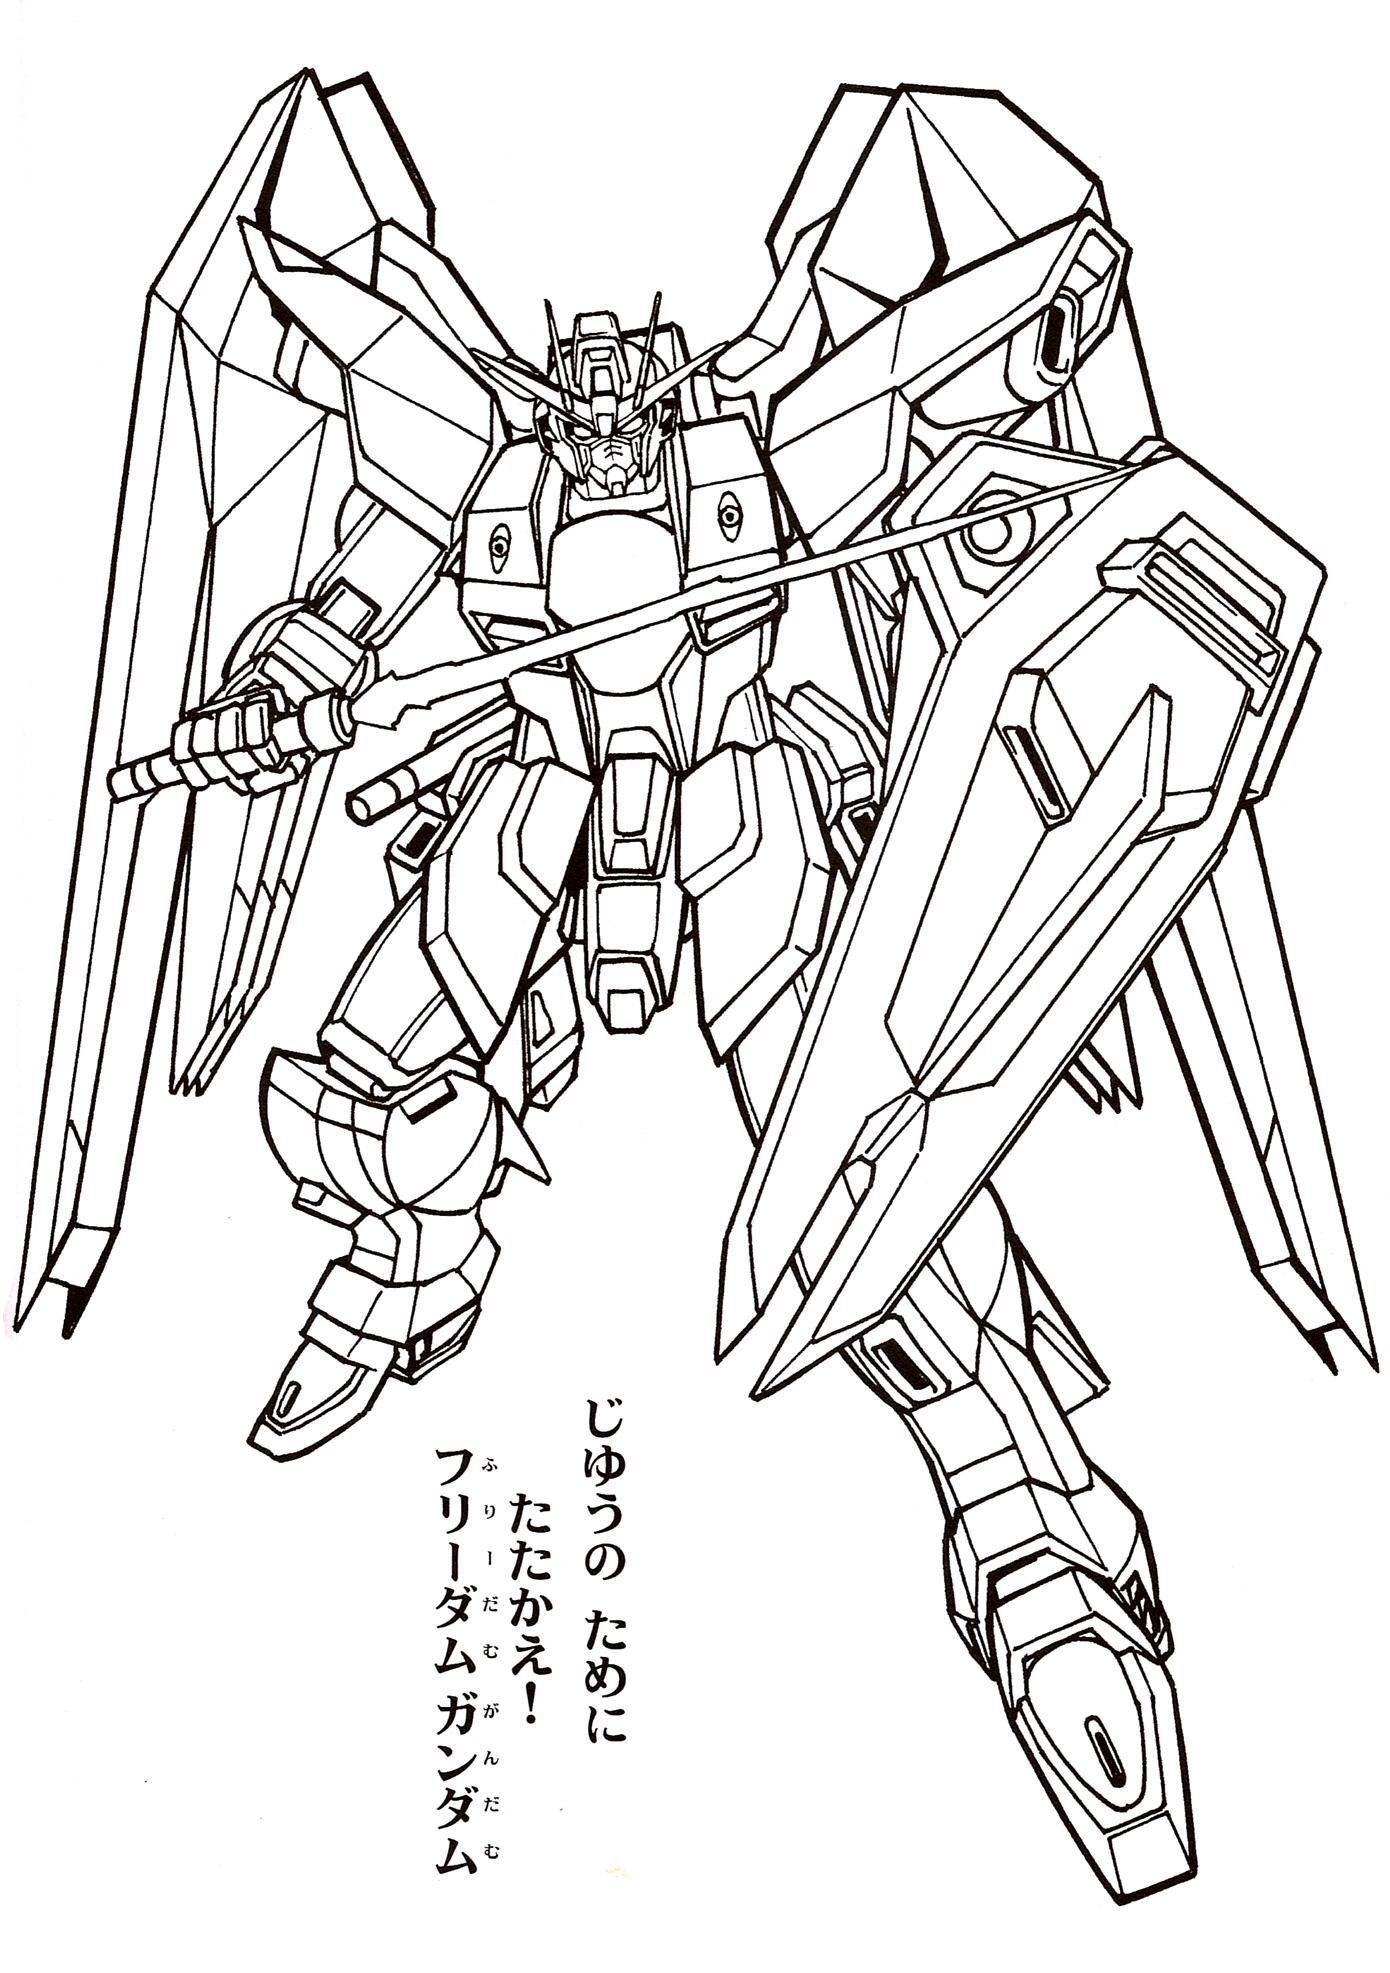 Gundam Coloring Pages Best Coloring Pages For Kids Transformers Coloring Pages Coloring Pages Free Coloring Pages